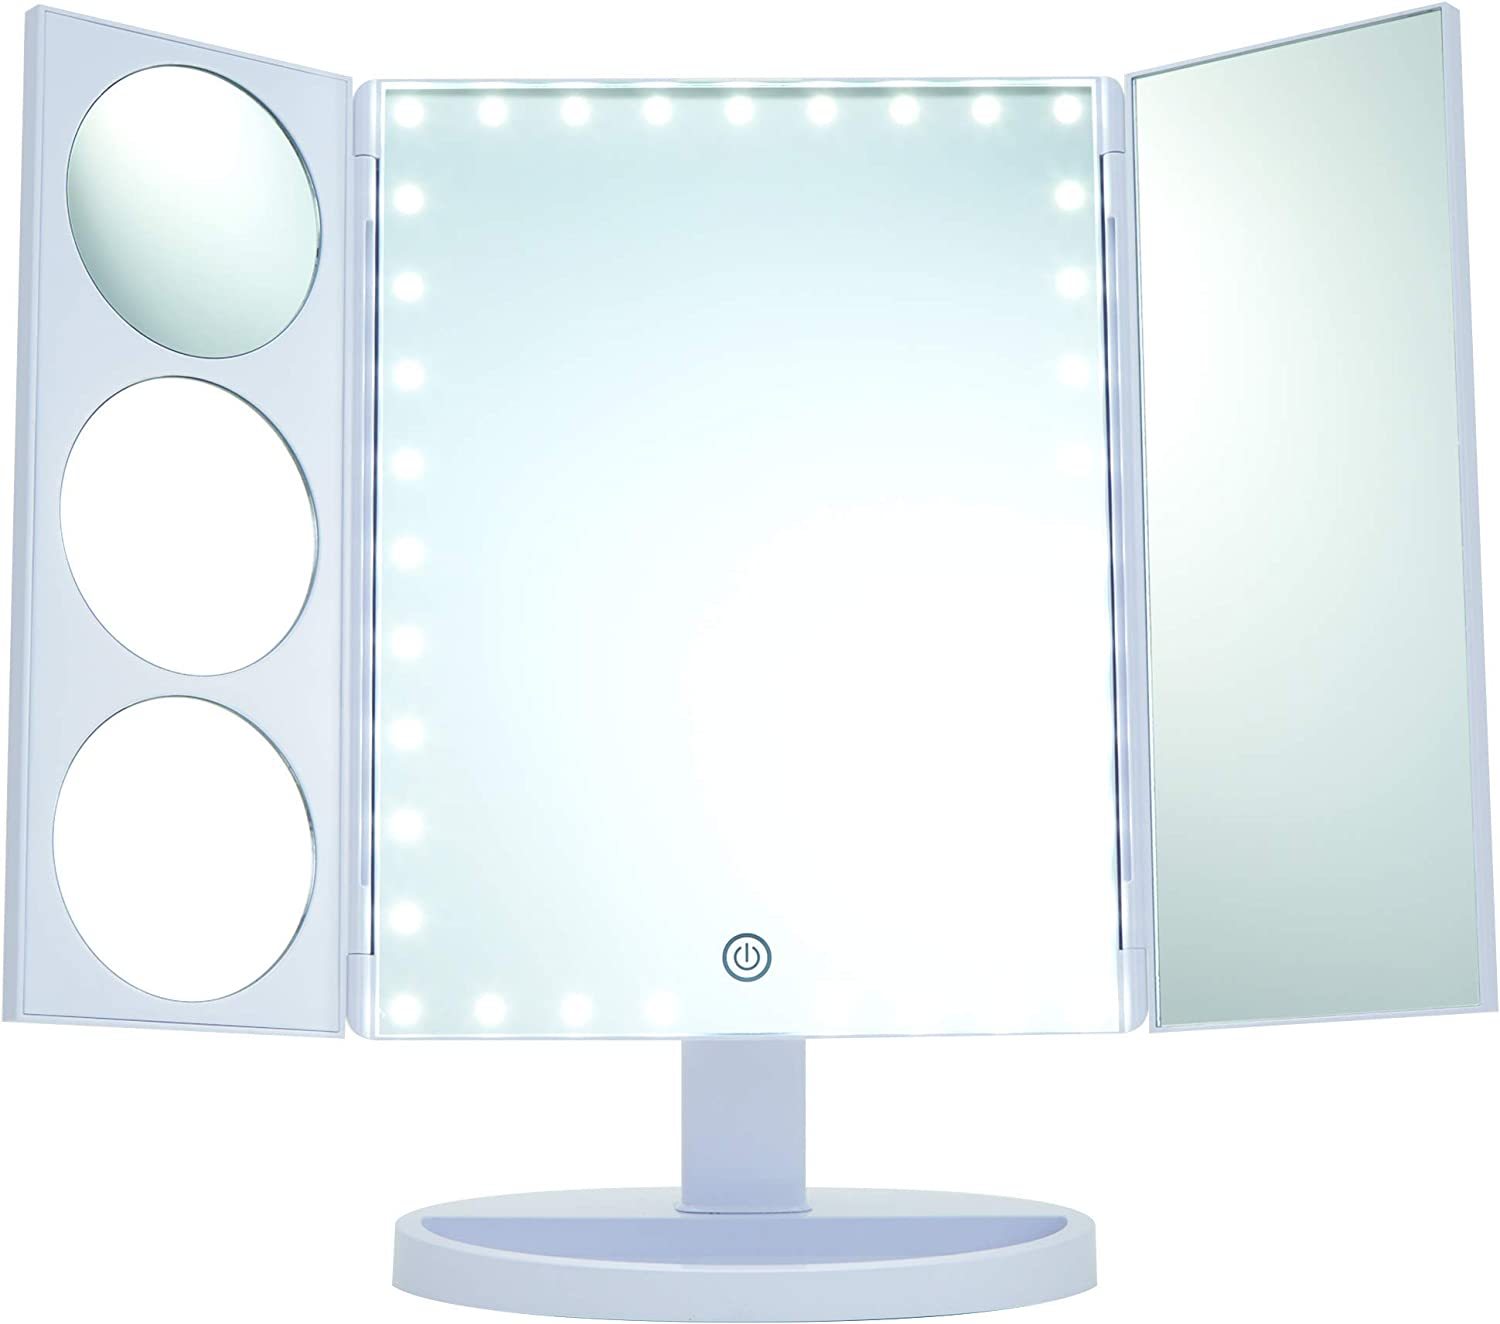 Thinkspace Beauty Large Trifold Magnifying Makeup Mirror with LED Lights, White